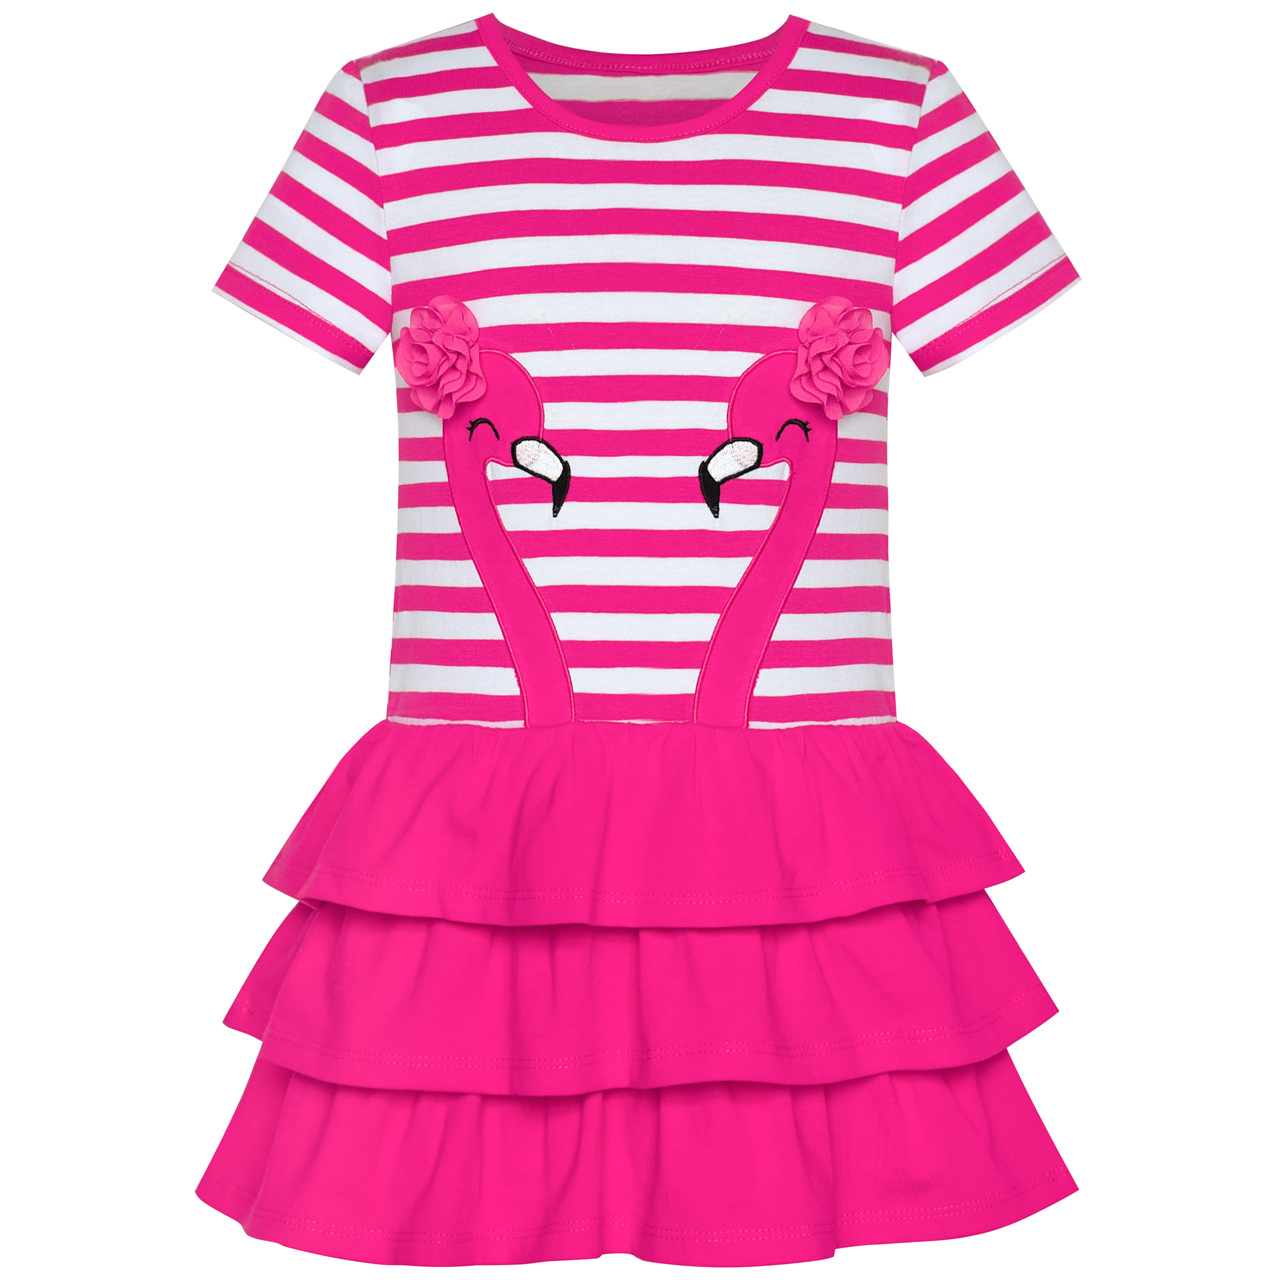 Girls Dress Cotton Short Sleeve Casual Embroidered Bird Flower 2019 Summer Princess Wedding Party Dresses Kids Clothes Pageant hot top summer girls soft cotton solid dress casual ruffles o neck clothes cute short sleeve dresses for princess girl party